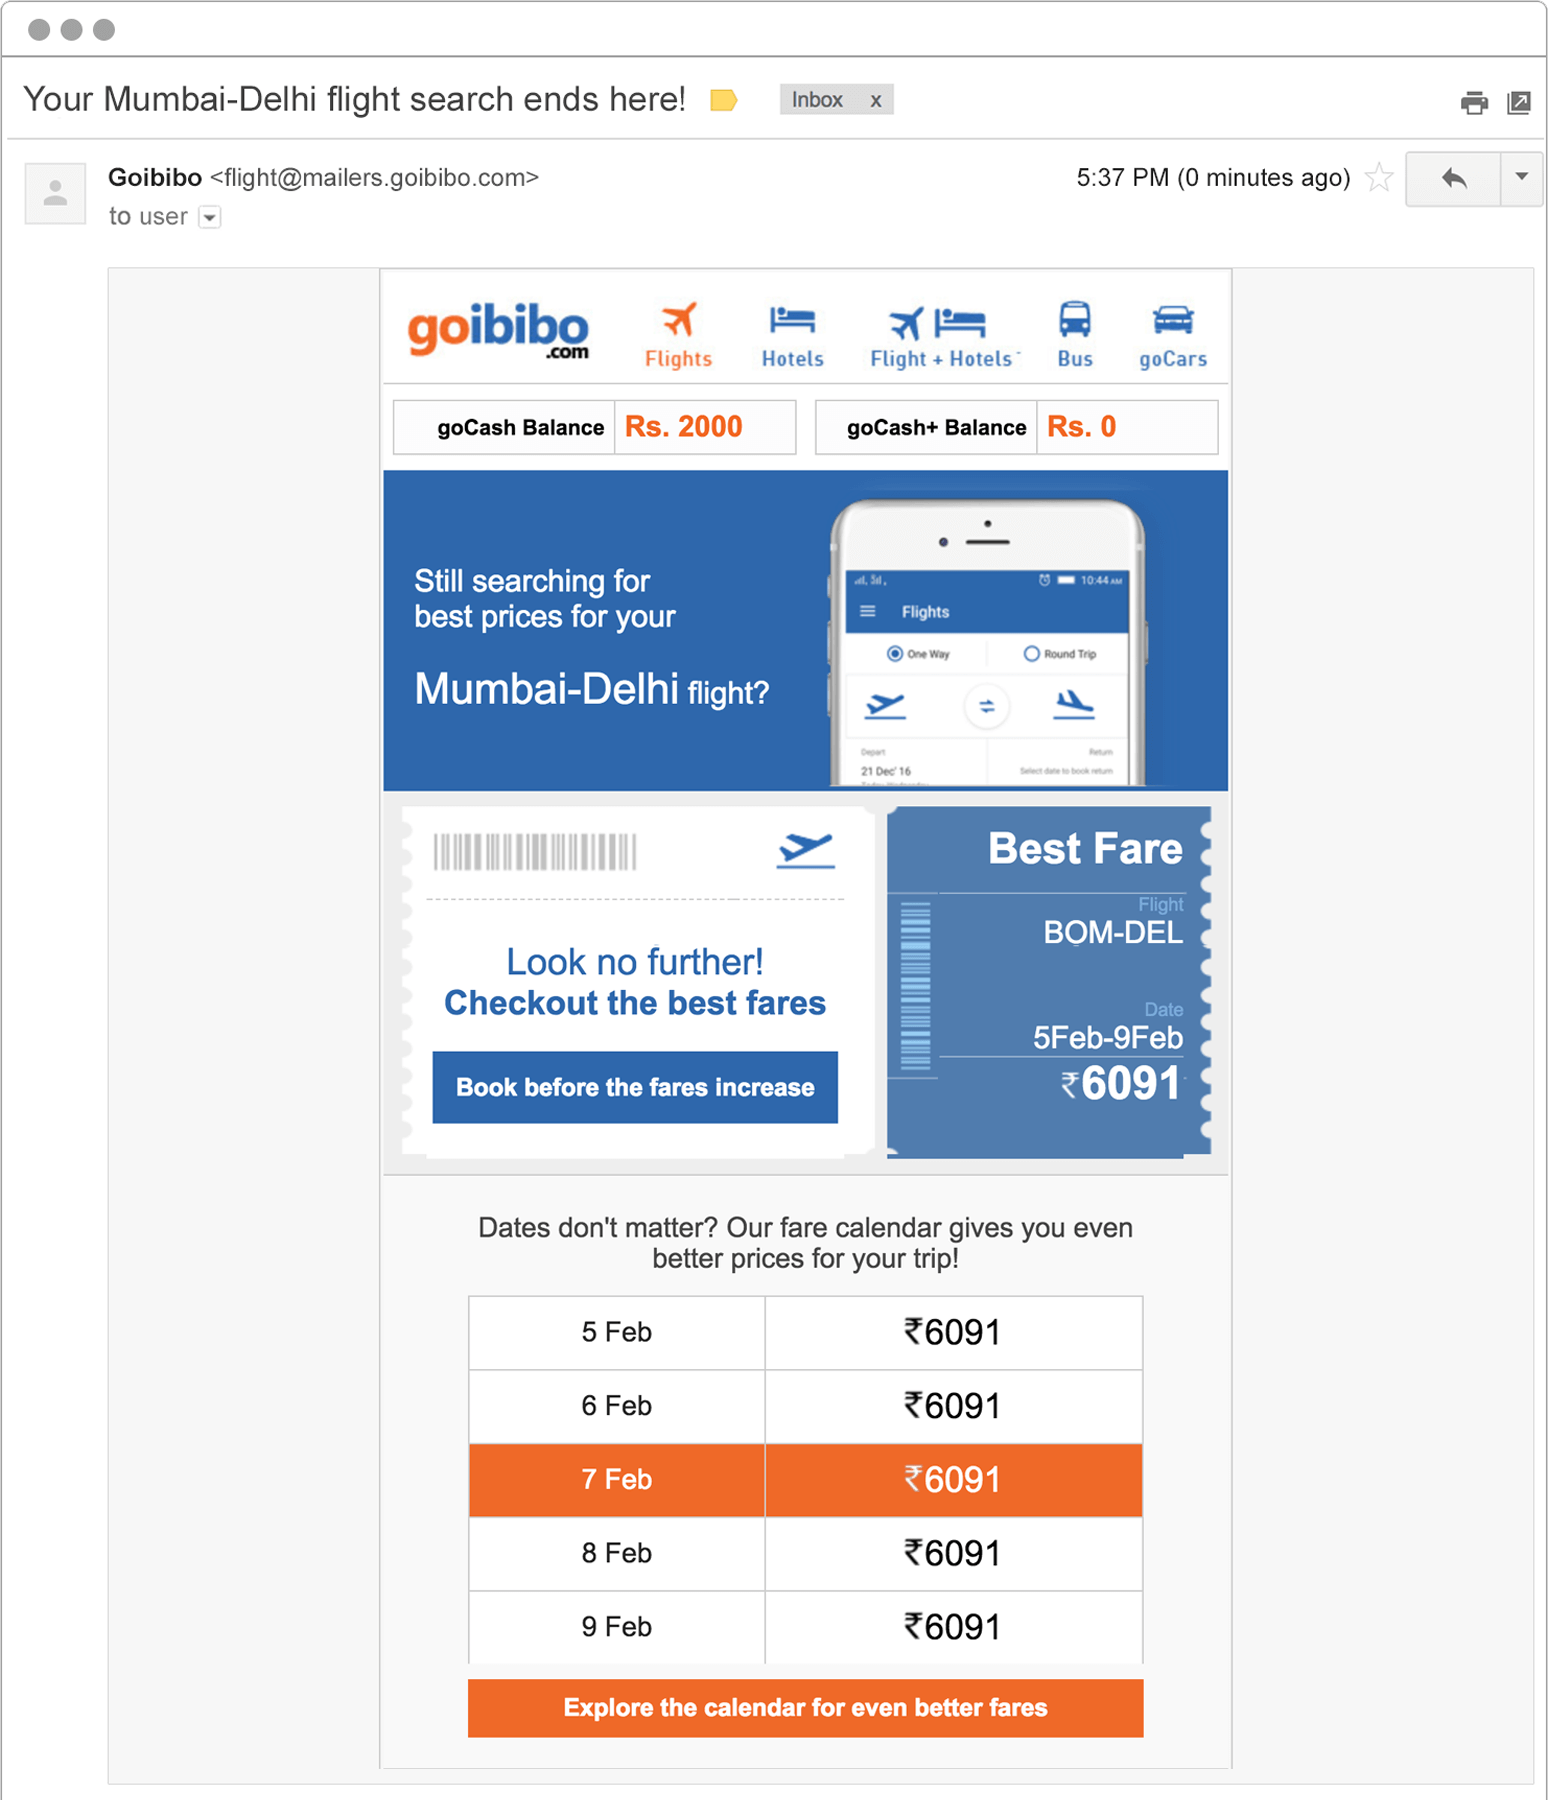 Goibibo flight search email to customers